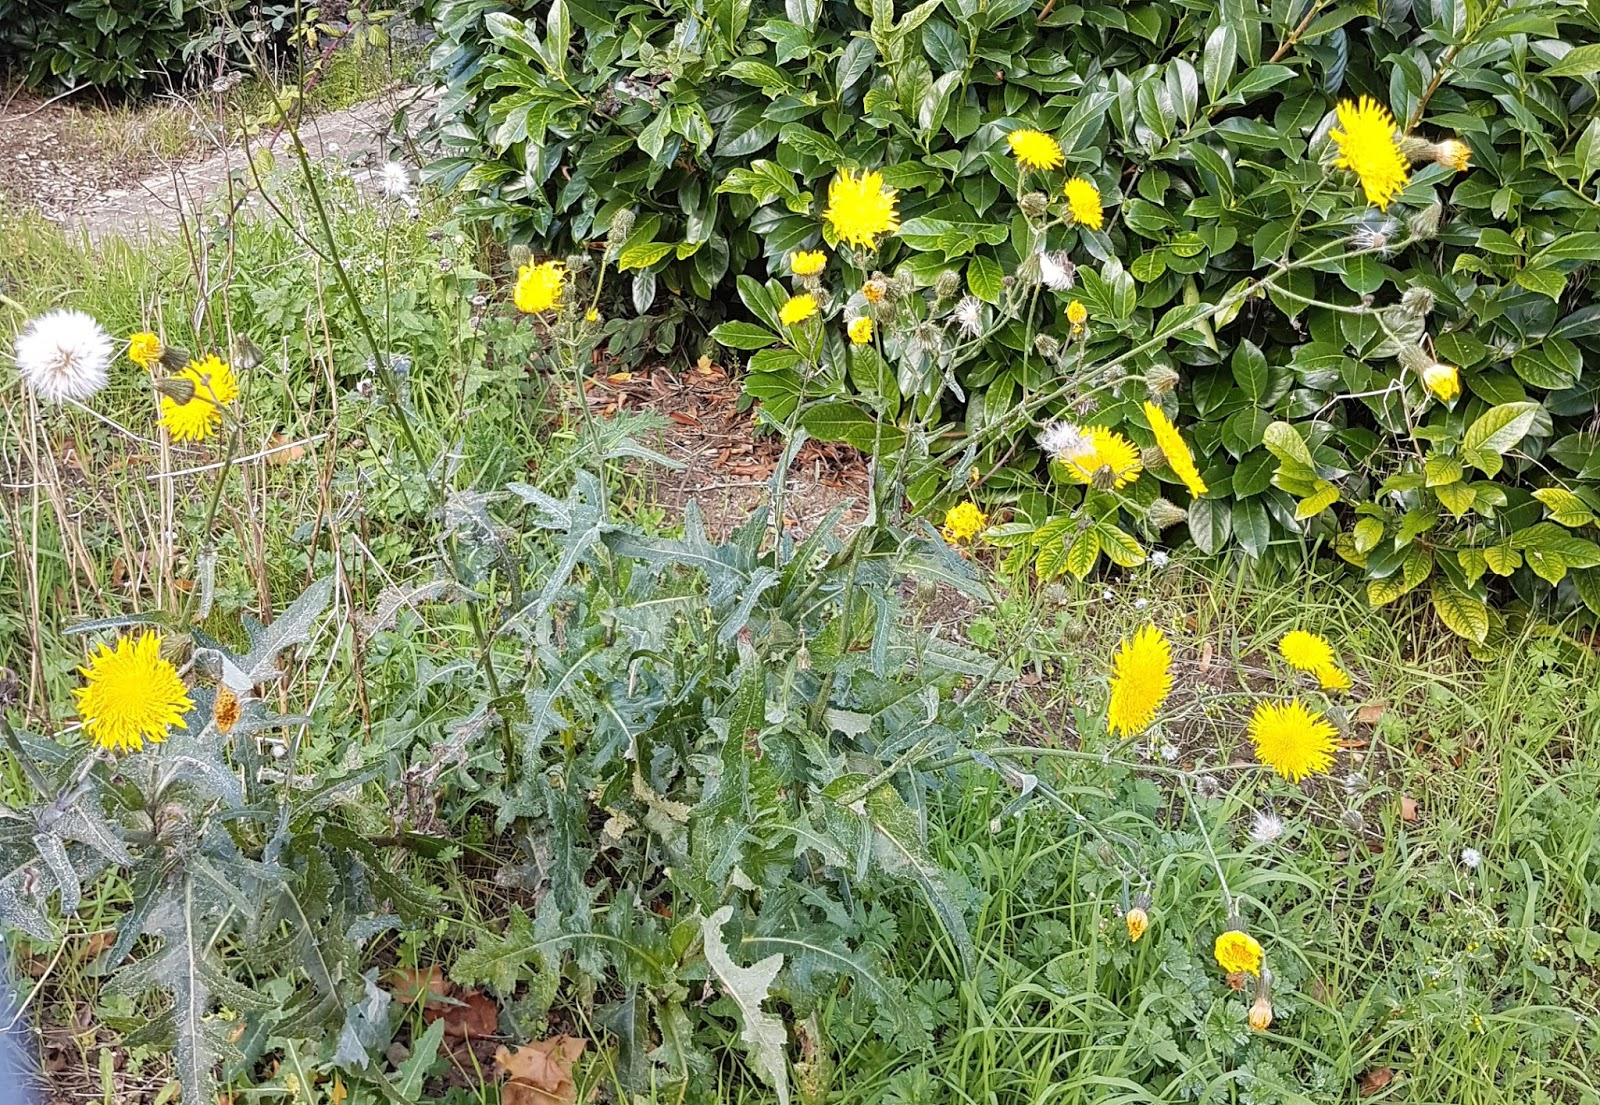 Michael peverett perennial sow thistle emsonchus arvensisem of the many dandelion like asteraceae species i do have several favourites though of those native to the uk this one has the biggest flowers mightylinksfo